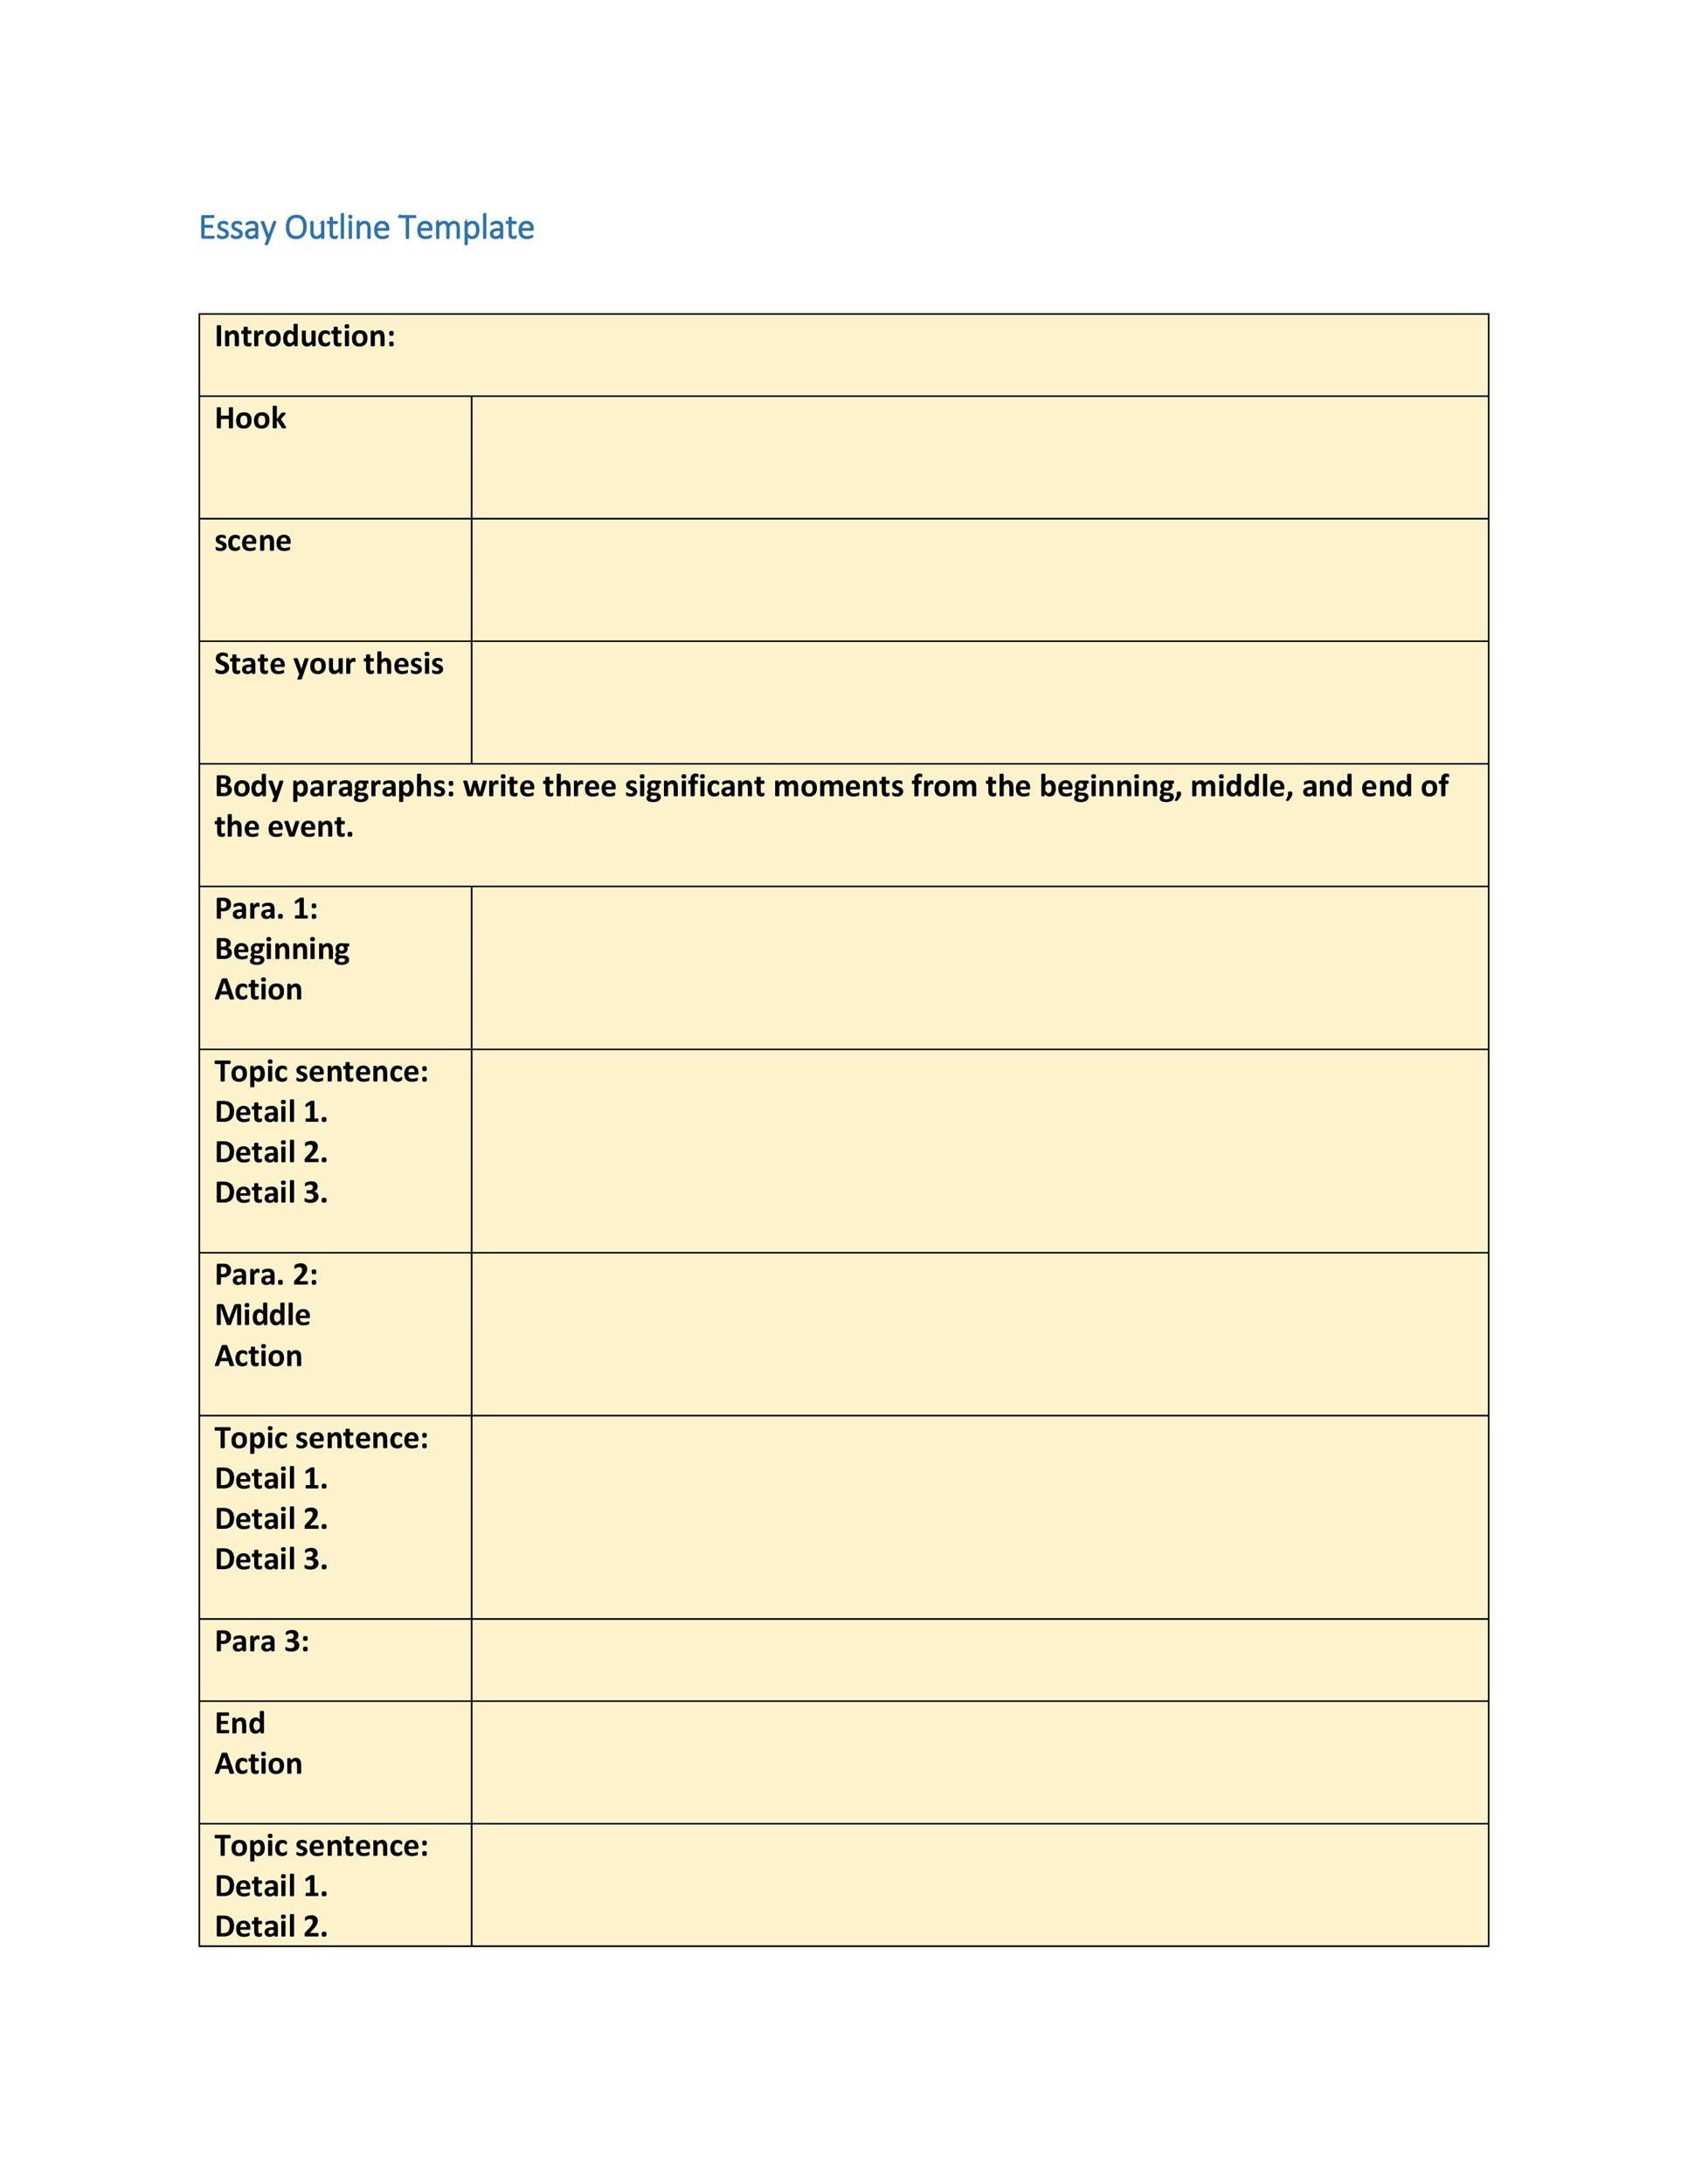 Free Essay Outline Template 07